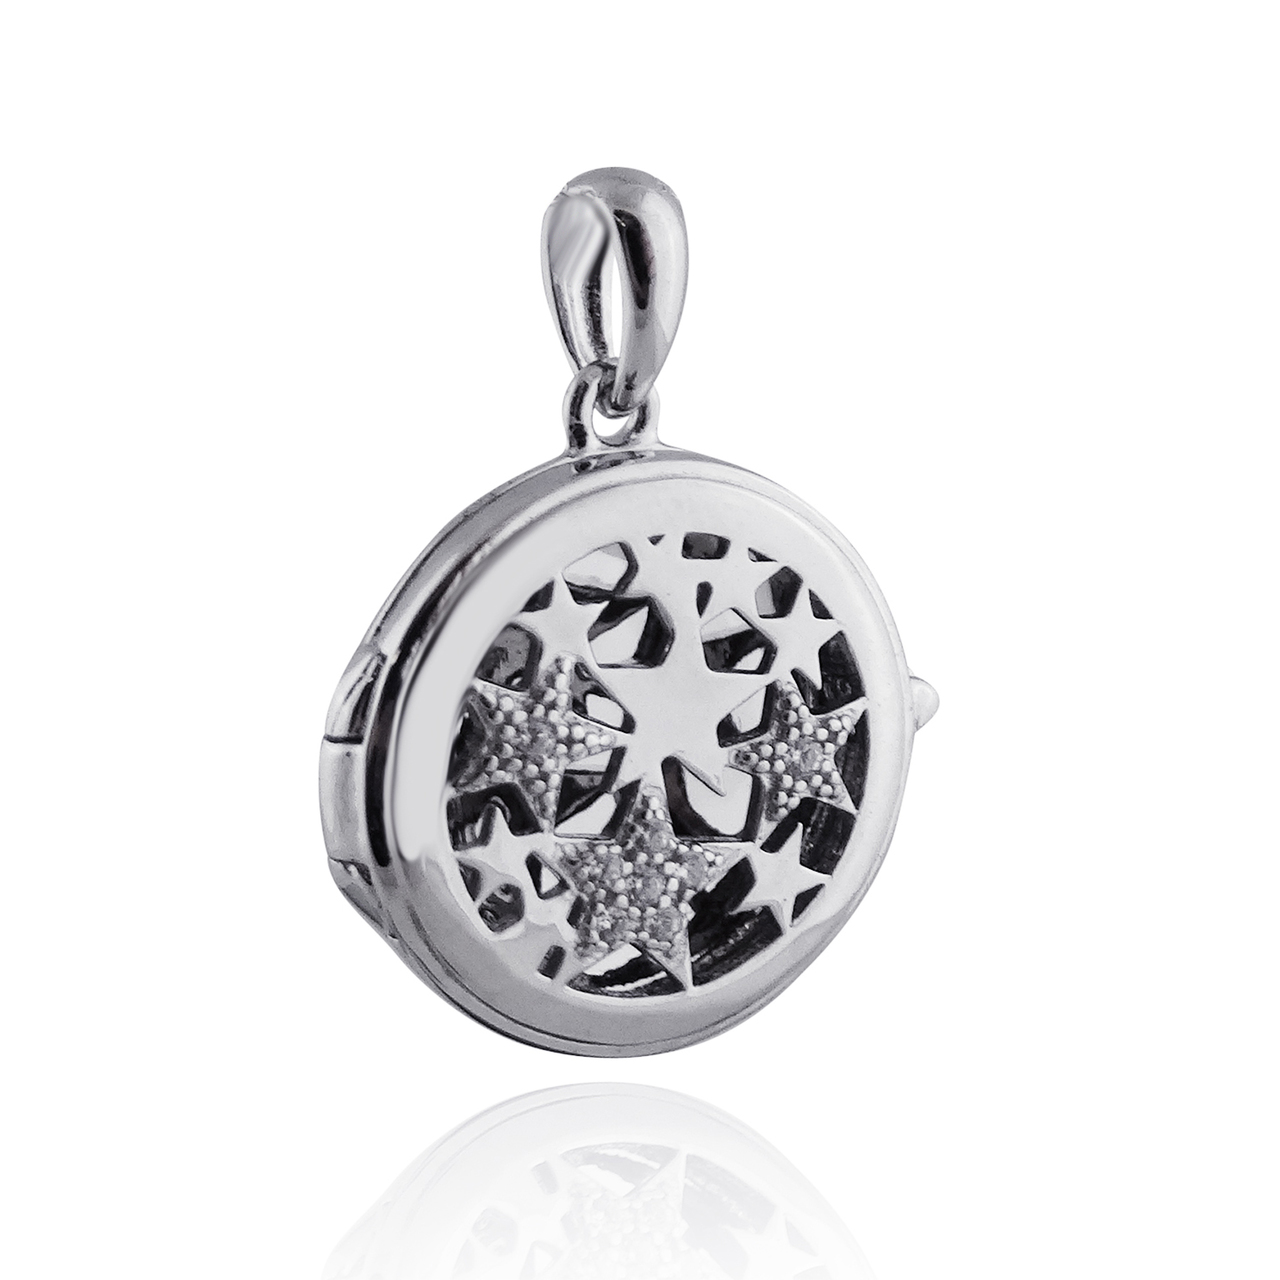 Round Locket with CZ Stars Pendant - 925 Sterling Silver